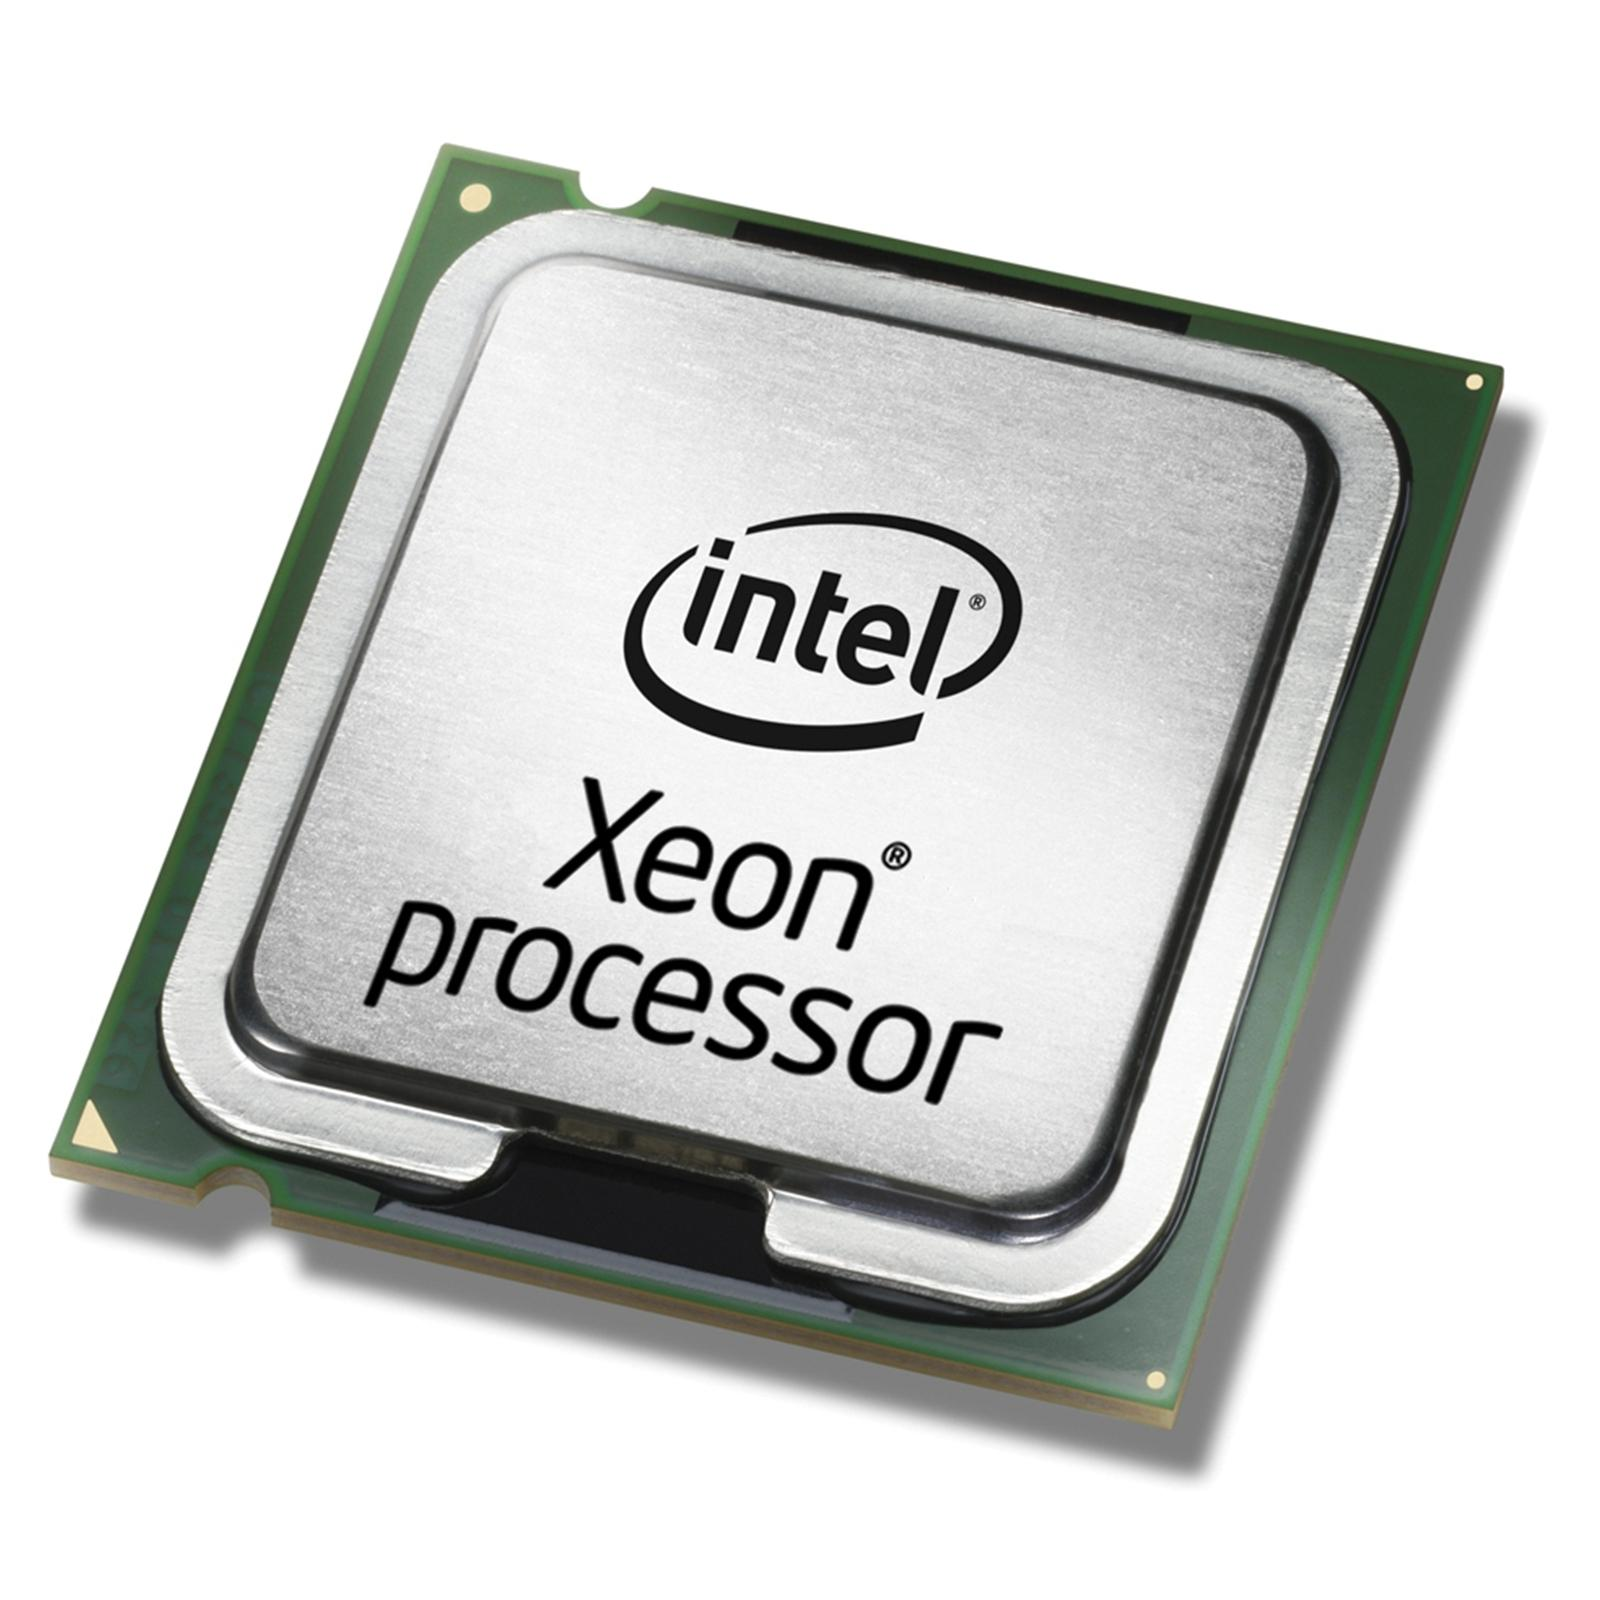 Express Intel Xeon Proc E5-2609 v2 4C 2.5GHz 10MB Cache 1333MHz 80W